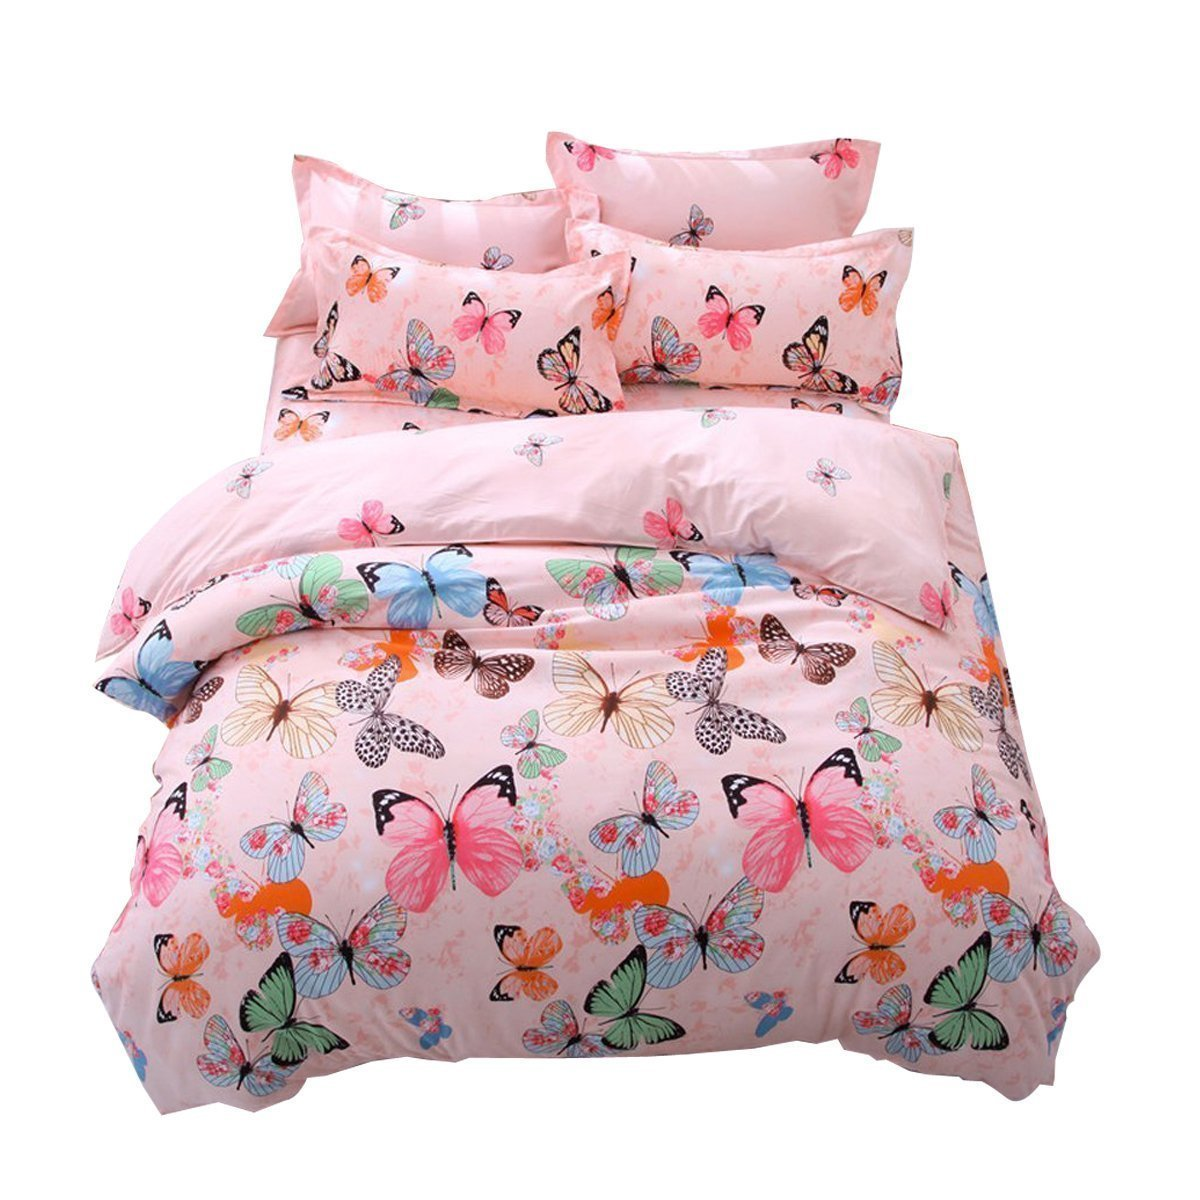 Lemontree Butterfly Bedding Set- Girls Soft Bedding DUVET COVER-Pink Butterflies Floral Patterns,Hypoallergenic,Microfiber -1 Duvet Cover + 1 FLAT Sheet + 2 Pillowcases JUST COVER NOT COMFORTER